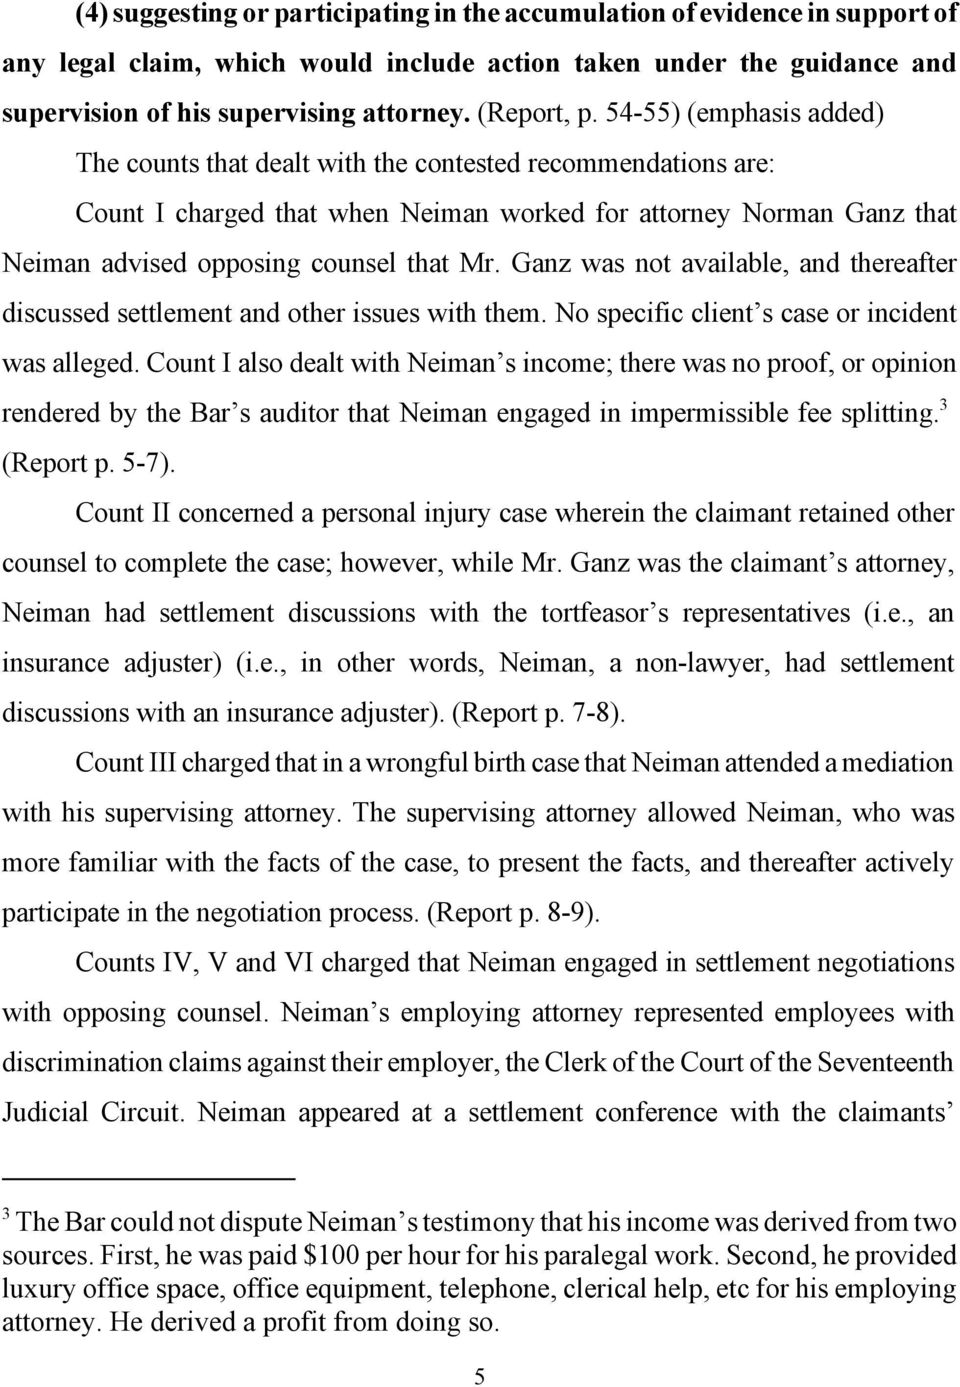 54-55) (emphasis added) The counts that dealt with the contested recommendations are: Count I charged that when Neiman worked for attorney Norman Ganz that Neiman advised opposing counsel that Mr.